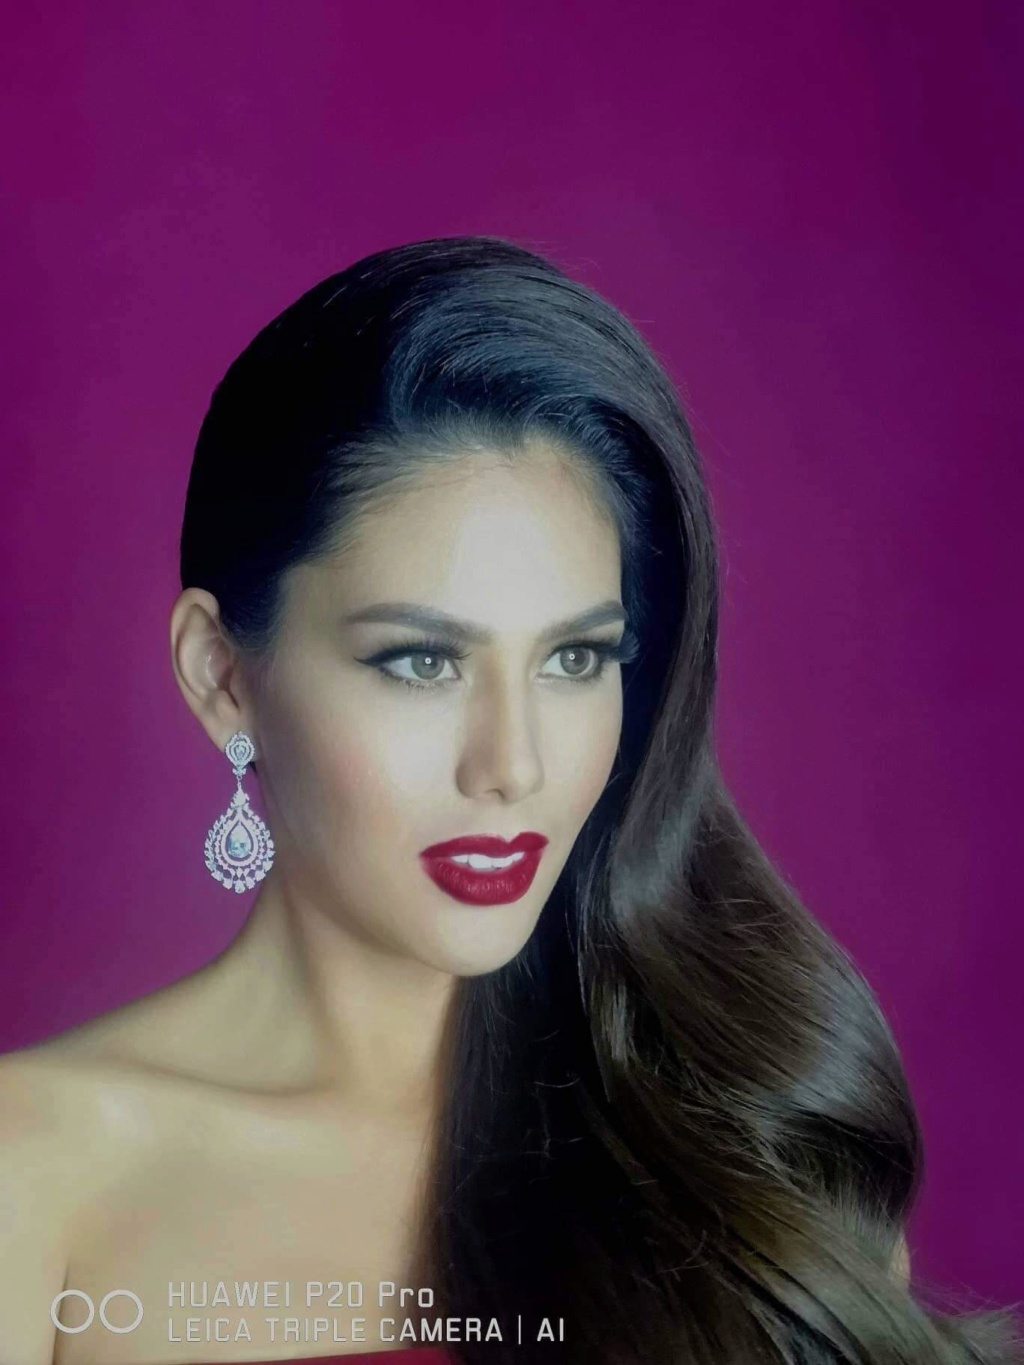 Road to Binibining Pilipinas 2019 - Results!! - Page 7 55549710